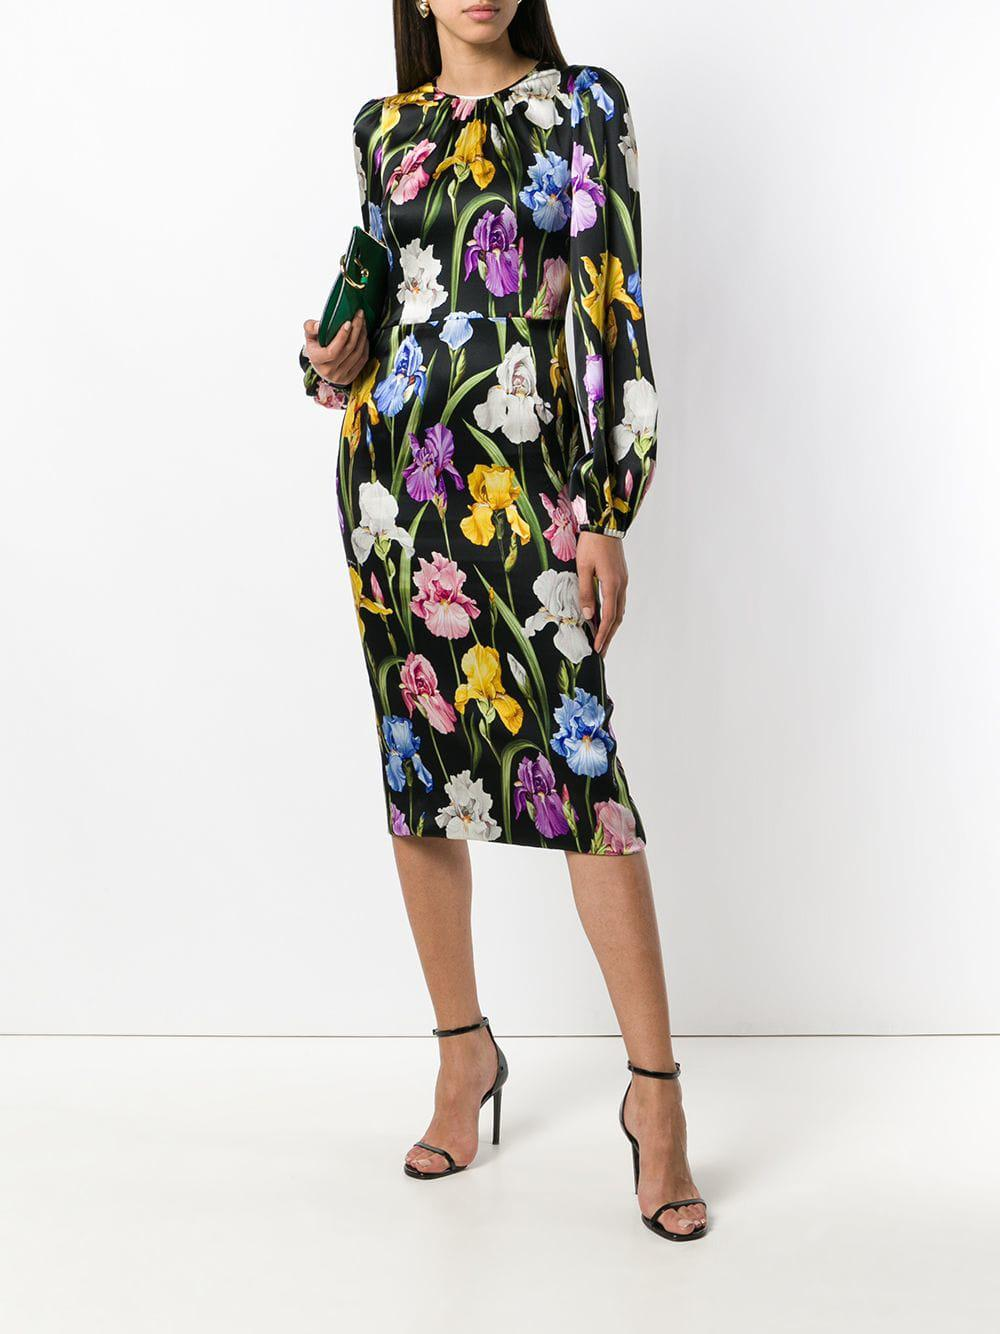 5713cd9626a Lyst - Dolce   Gabbana Floral Fitted Dress in Black - Save 68%